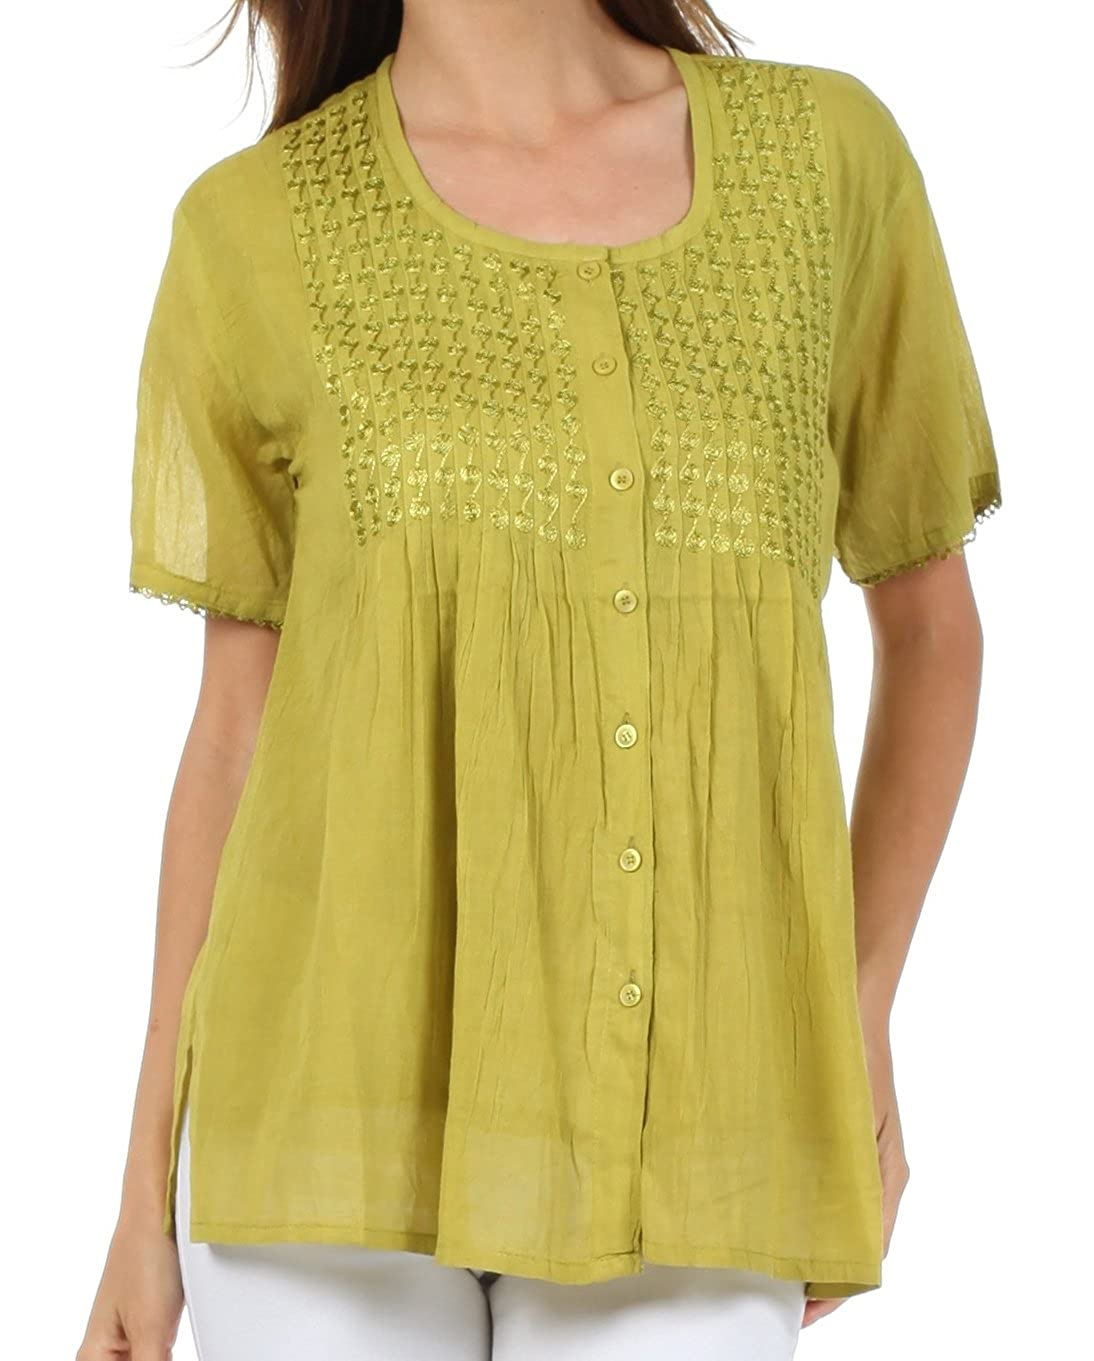 Sakkas Button Down Embroidered Short Sleeve Semi-Sheer Gauzy Cotton Top / Blouse 5055460187971